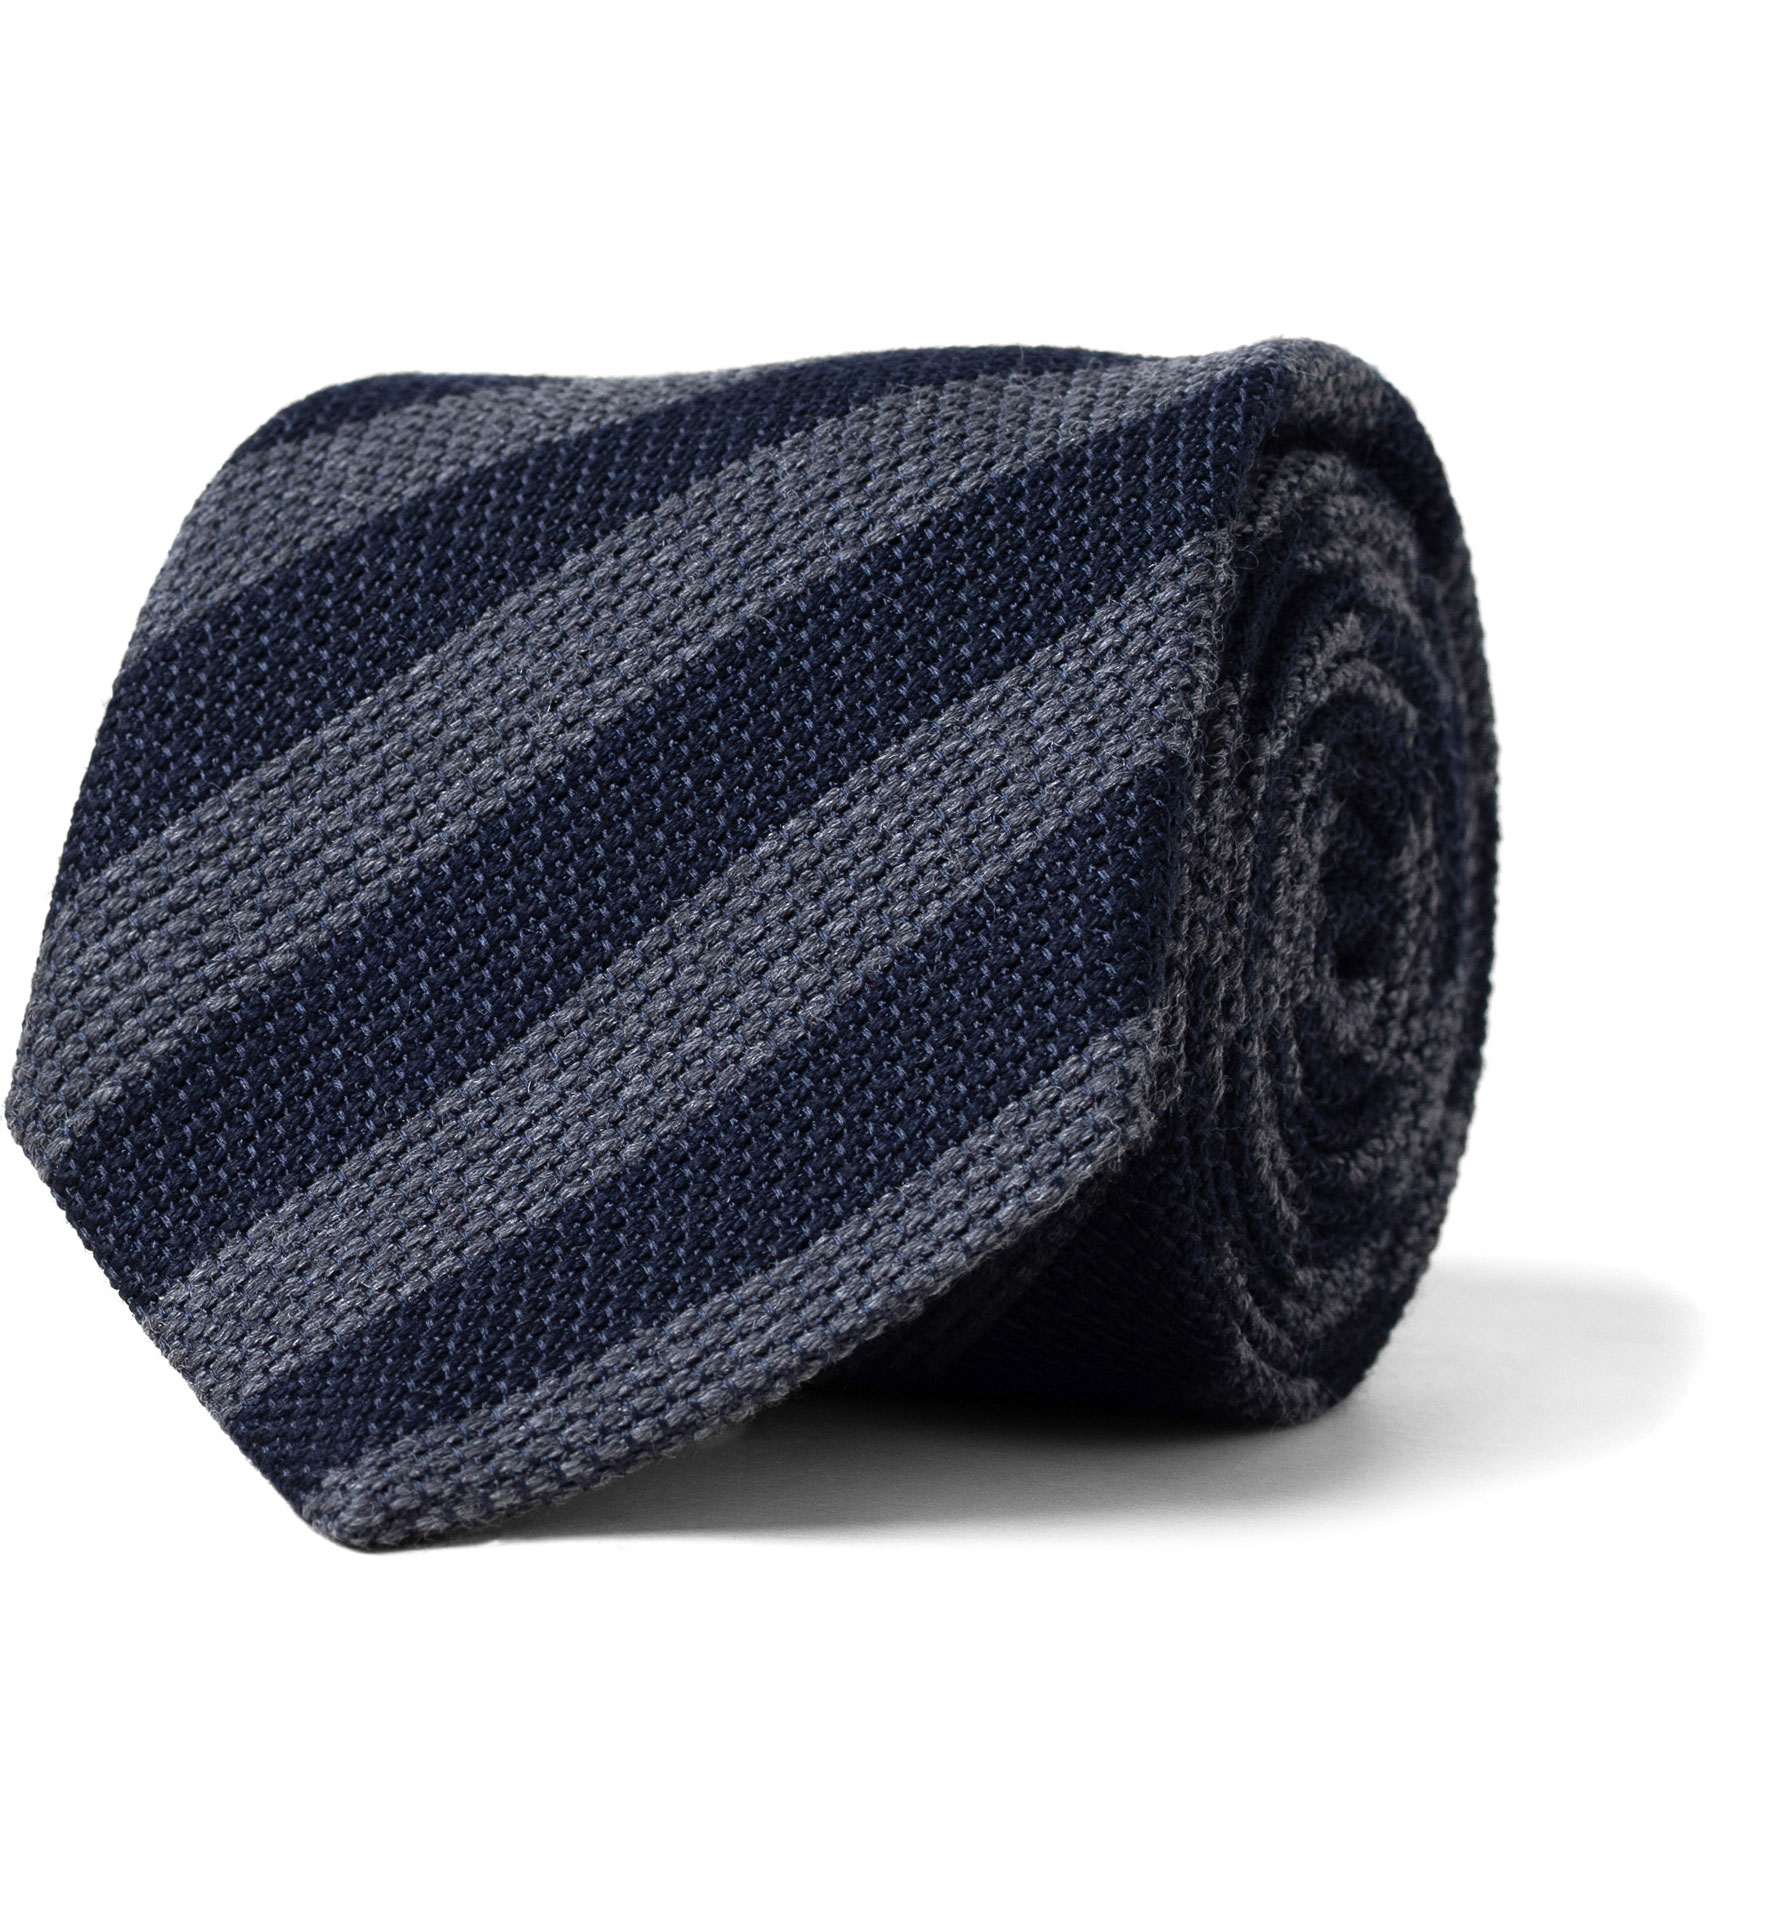 Zoom Image of Navy and Grey Striped Wool Grenadine Tie